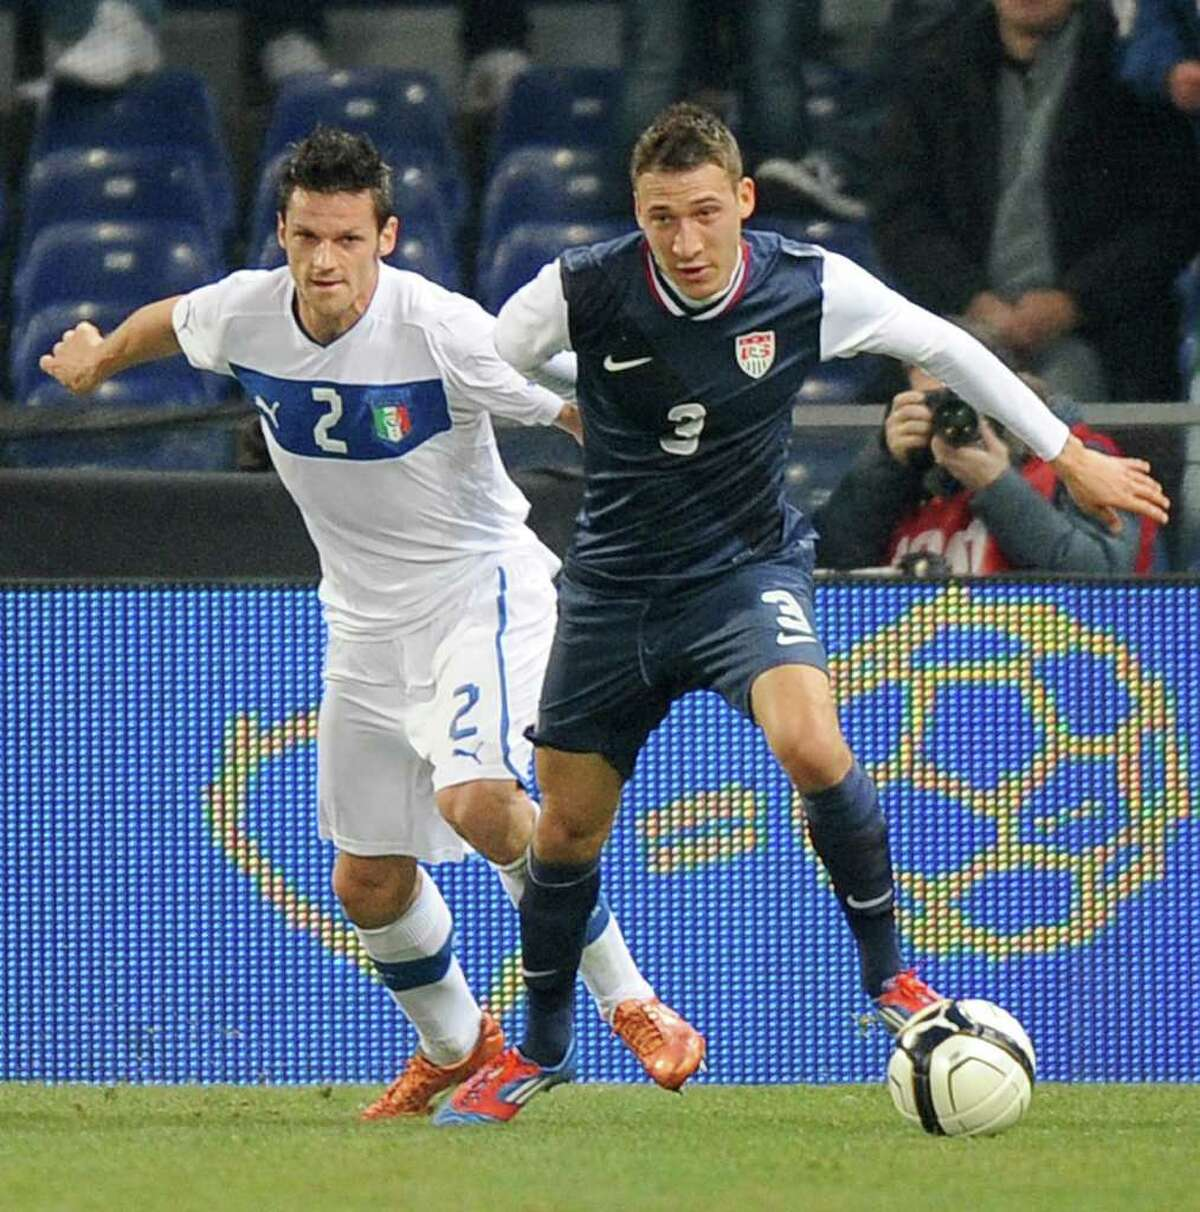 US midfielder Fabian Johnson, right, and Italy midfielder Cristian Maggio vie for the ball during a friendly soccer match between Italy and USA, at the Genoa Luigi Ferraris stadium, Italy, Wednesday, Feb. 29, 2012. USA won 1-0.